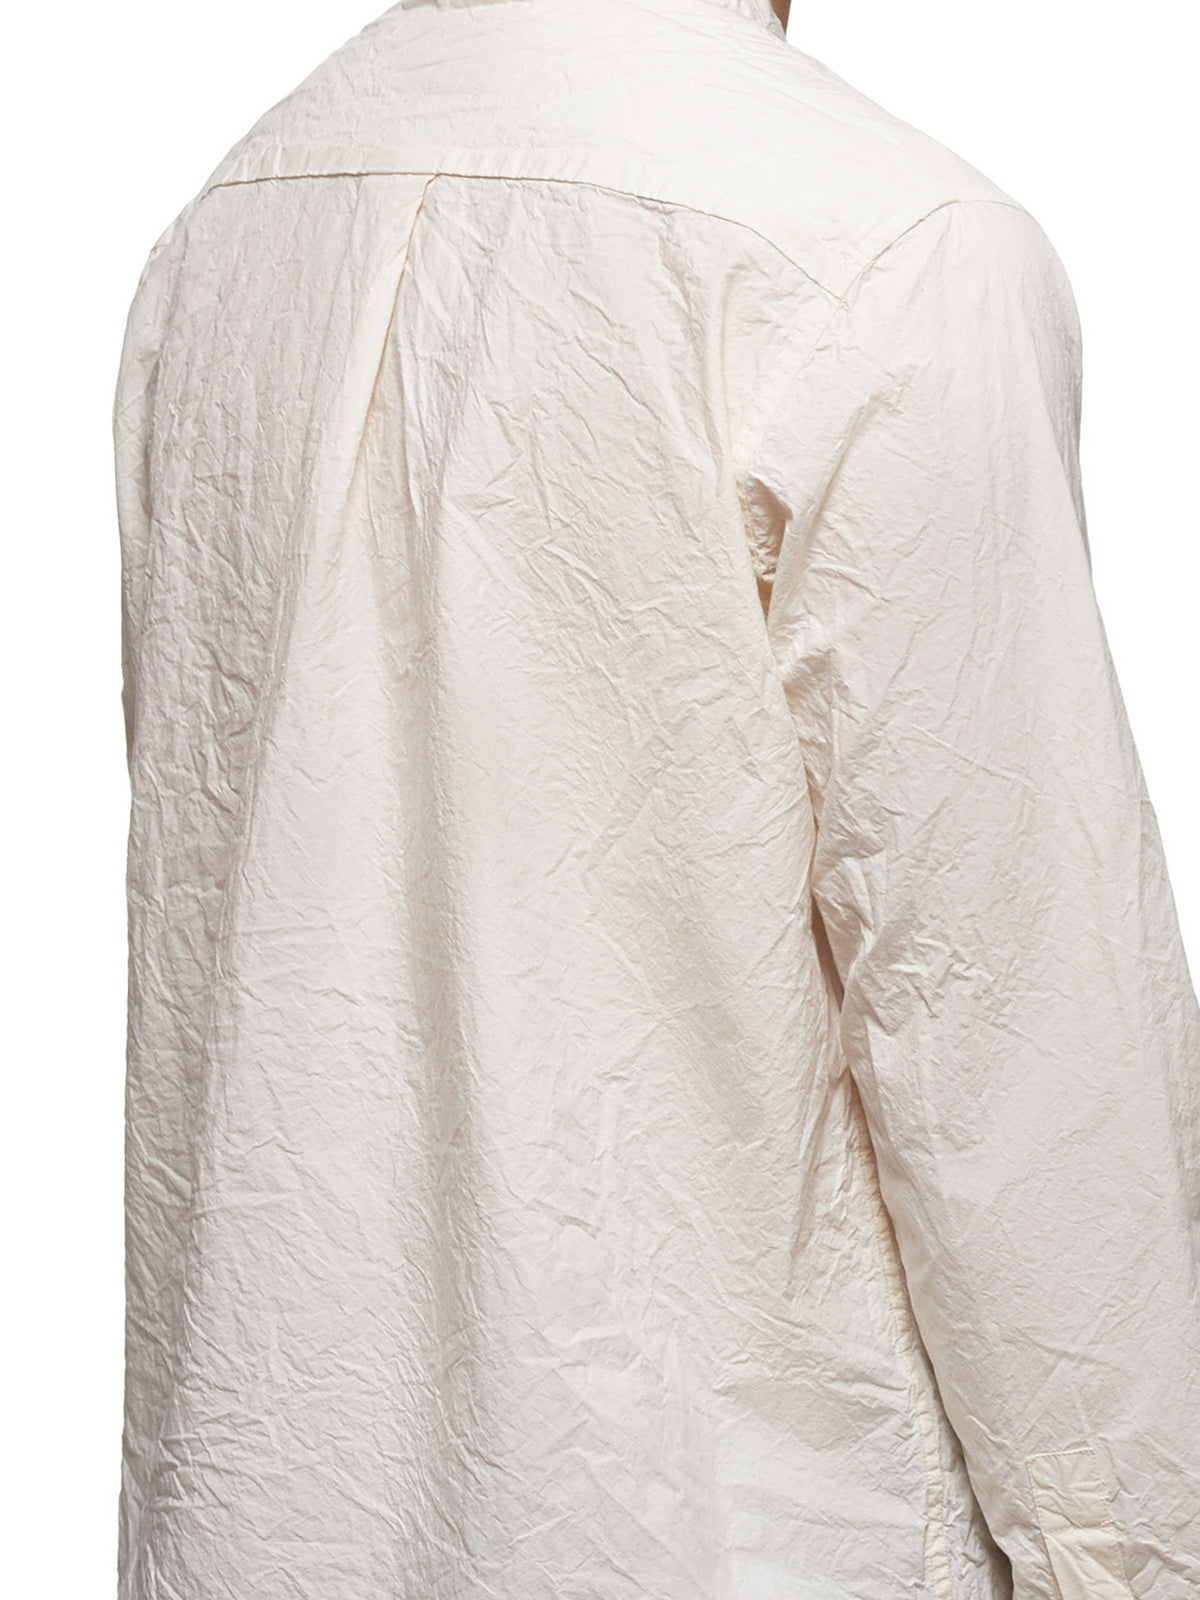 Crinkled Shirt (HC165-NATURAL)